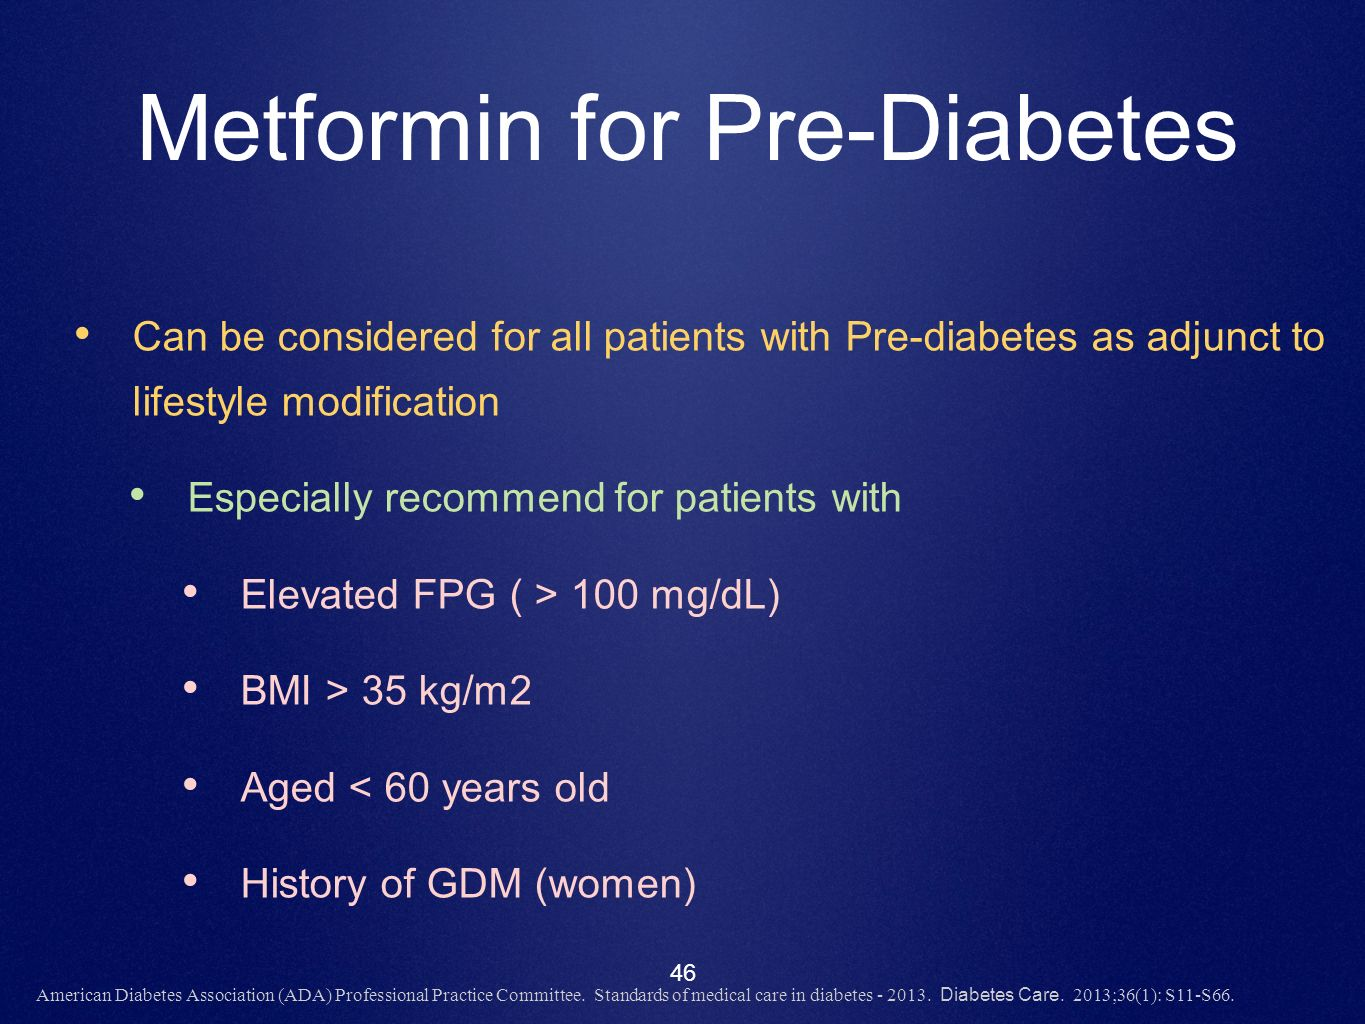 Metformin for Pre-Diabetes